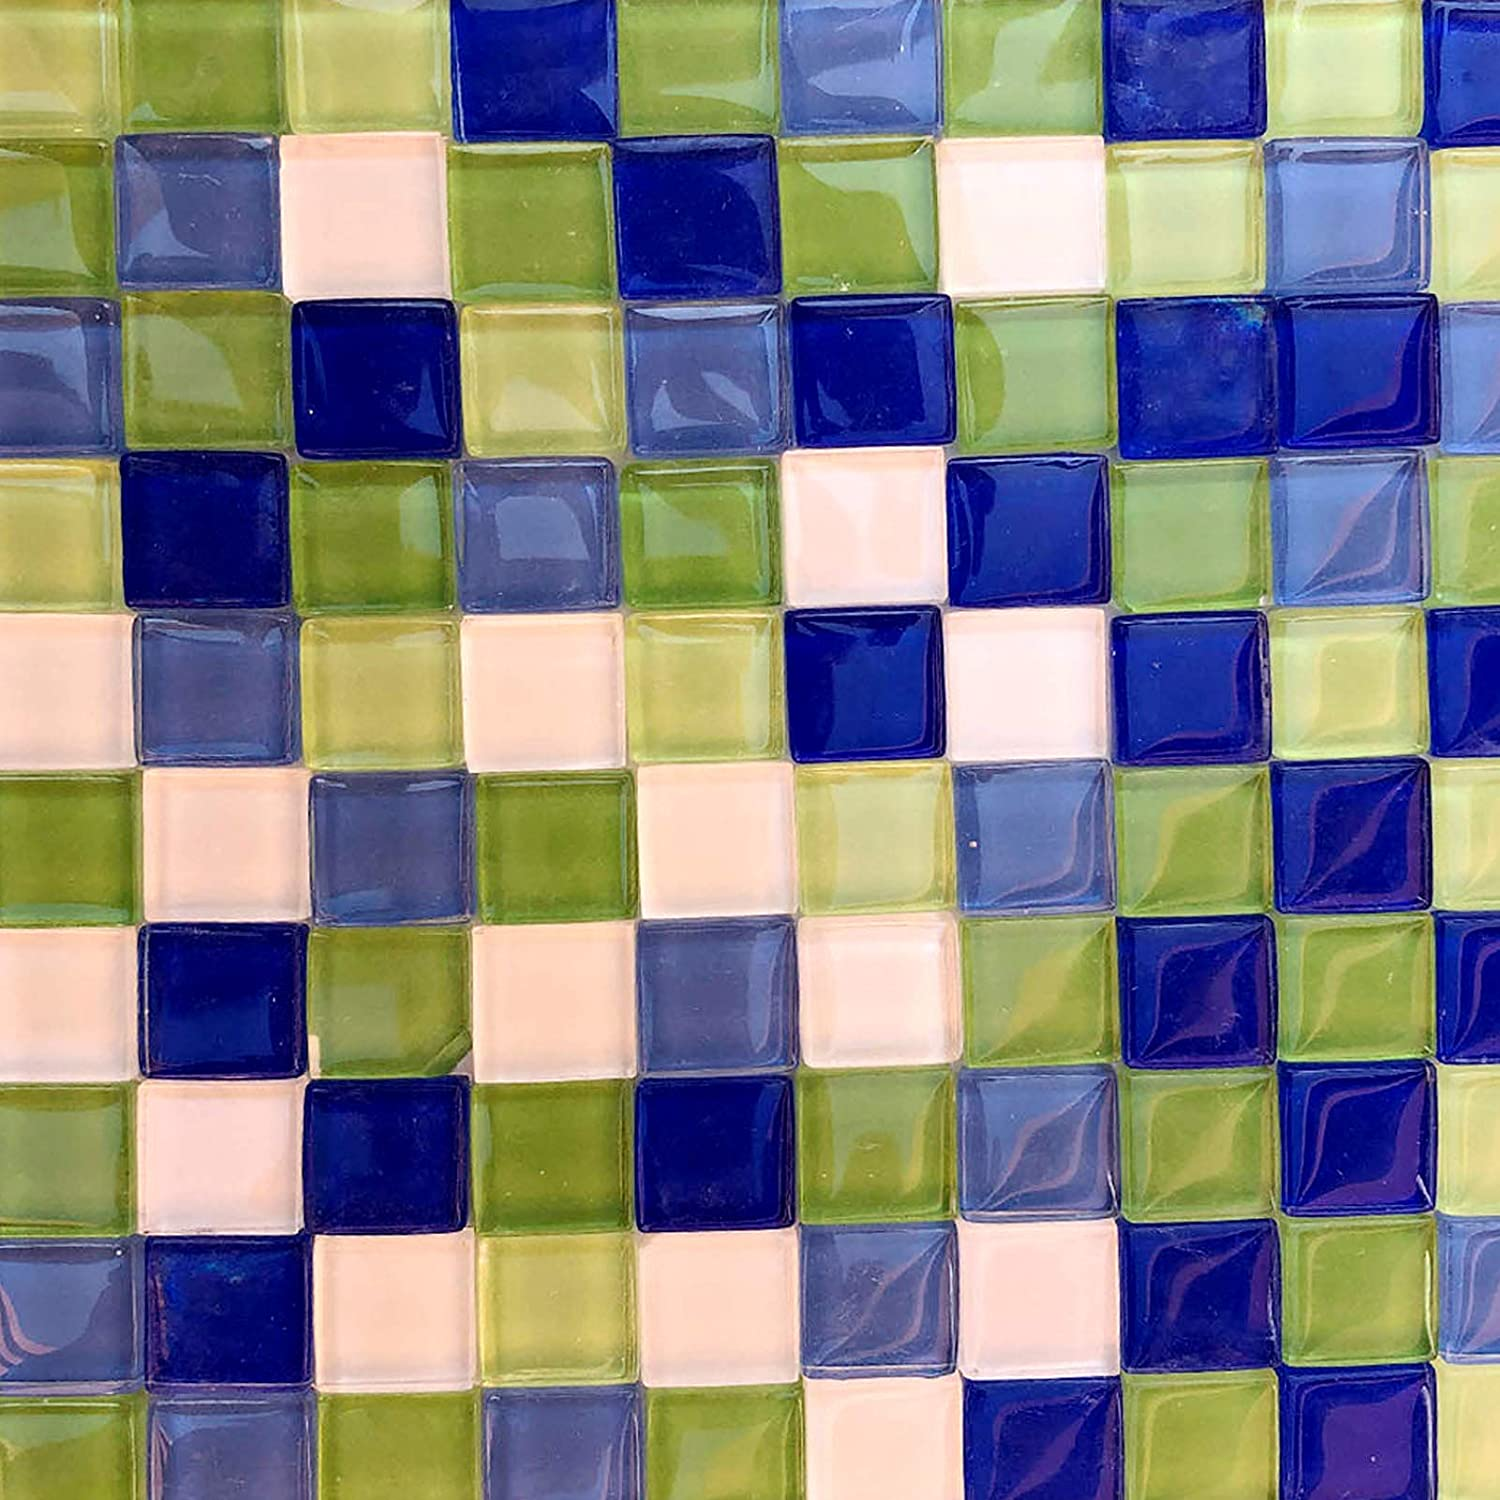 Opaque Square Mosaic Tiles for Crafts,200g Bulk Mosaic Glass Pieces for DIY Crafts, Plates, Coaster,Picture Frames - Mosaic Making Supplies in 5 Colors(1.5x1.5cm)